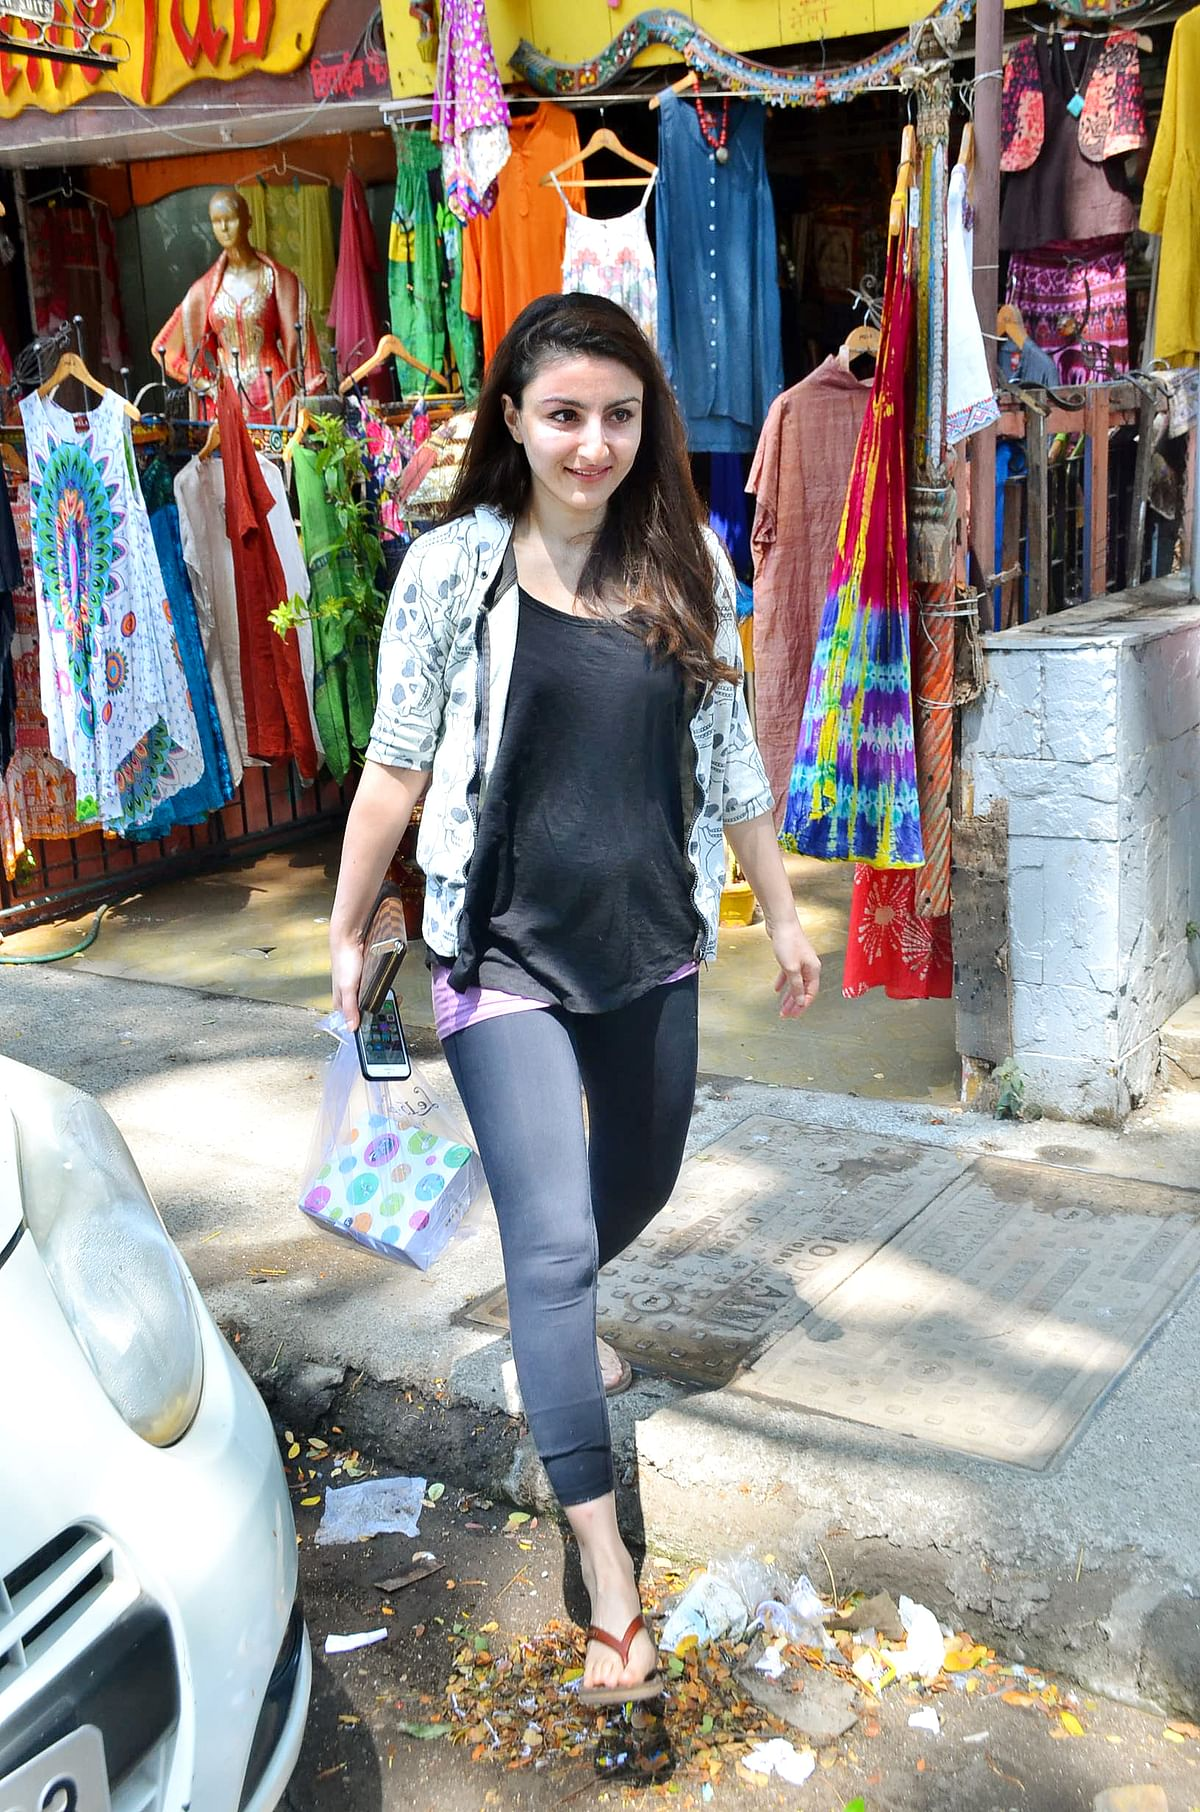 Soha Ali Khan is expecting her first baby. (Photo: Yogen Shah)